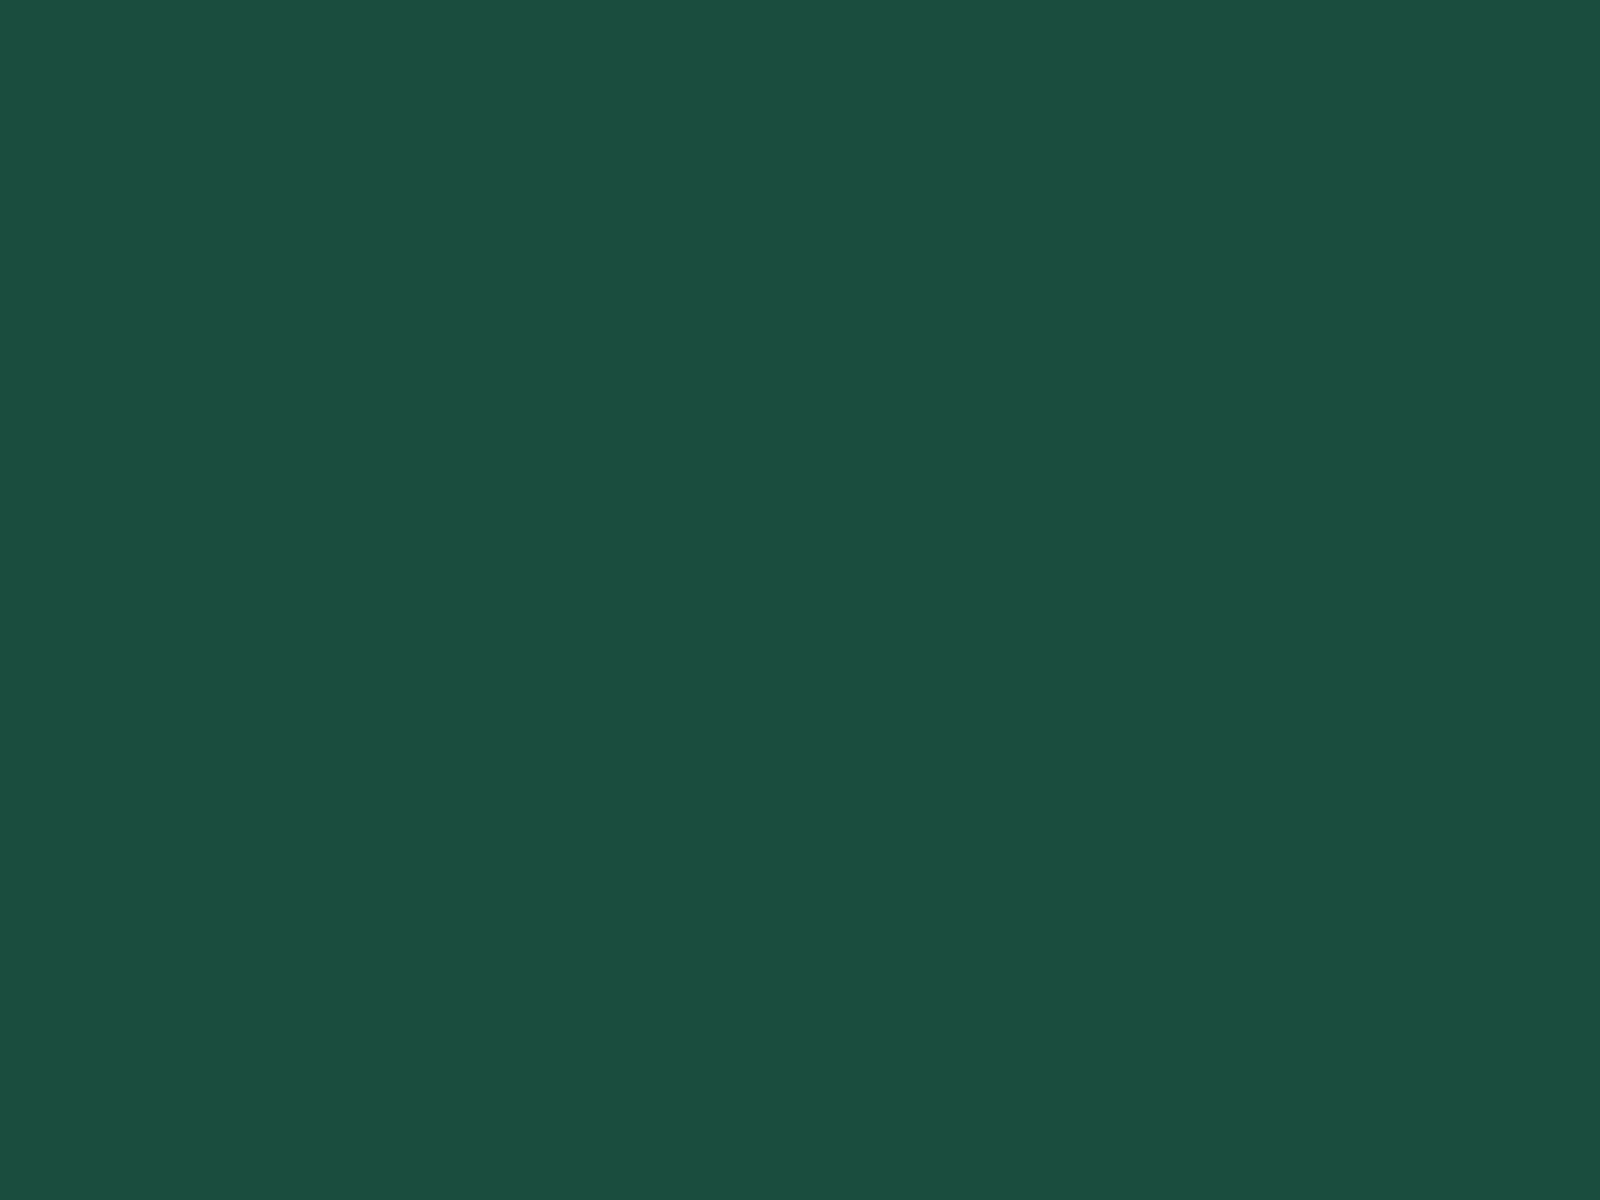 1600x1200 Brunswick Green Solid Color Background